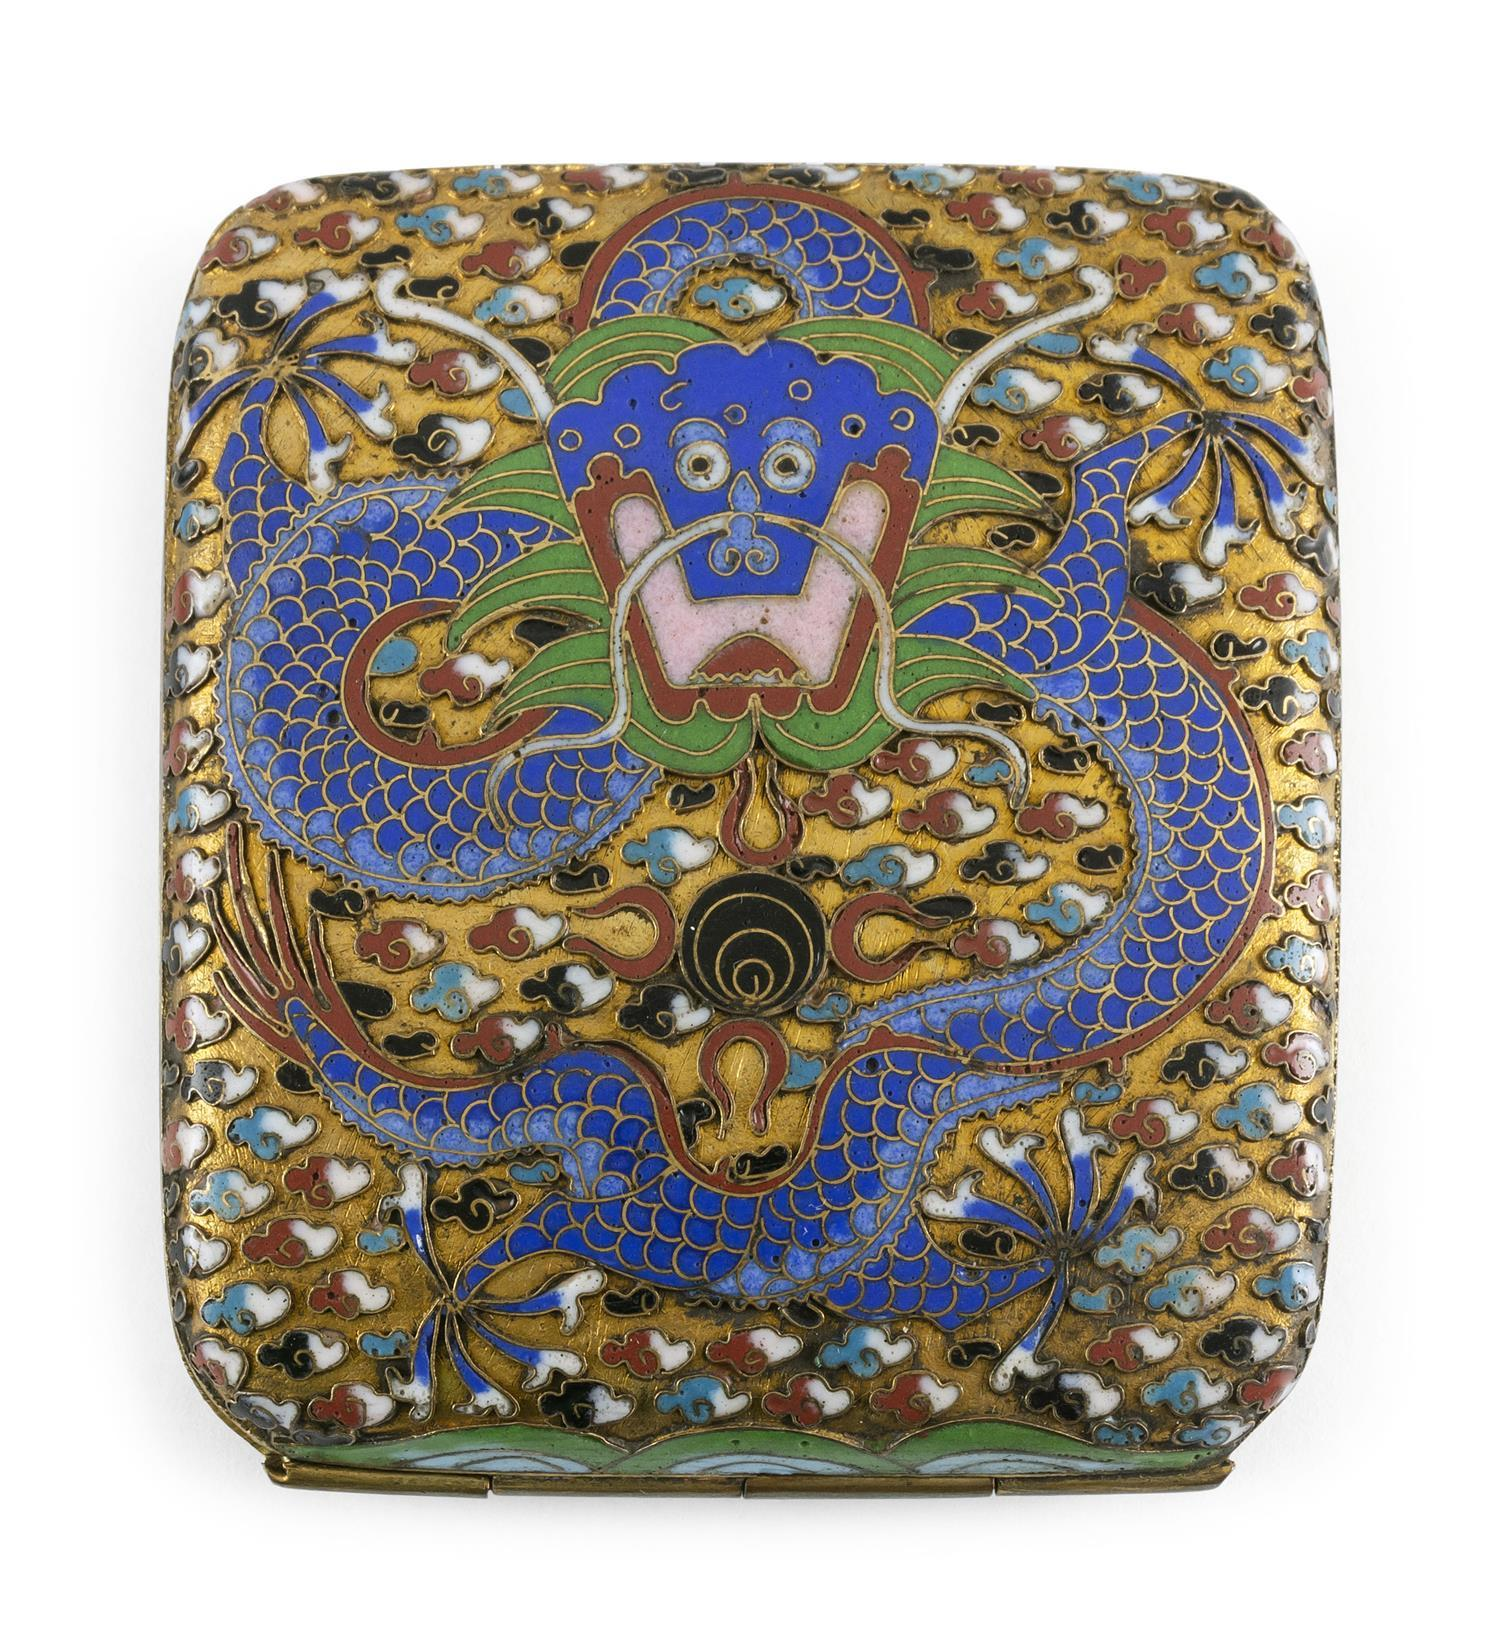 """CHINESE CLOISONNÉ ENAMEL CIGARETTE CASE With a five-clawed dragon design on a gold ground. Length 3.5""""."""